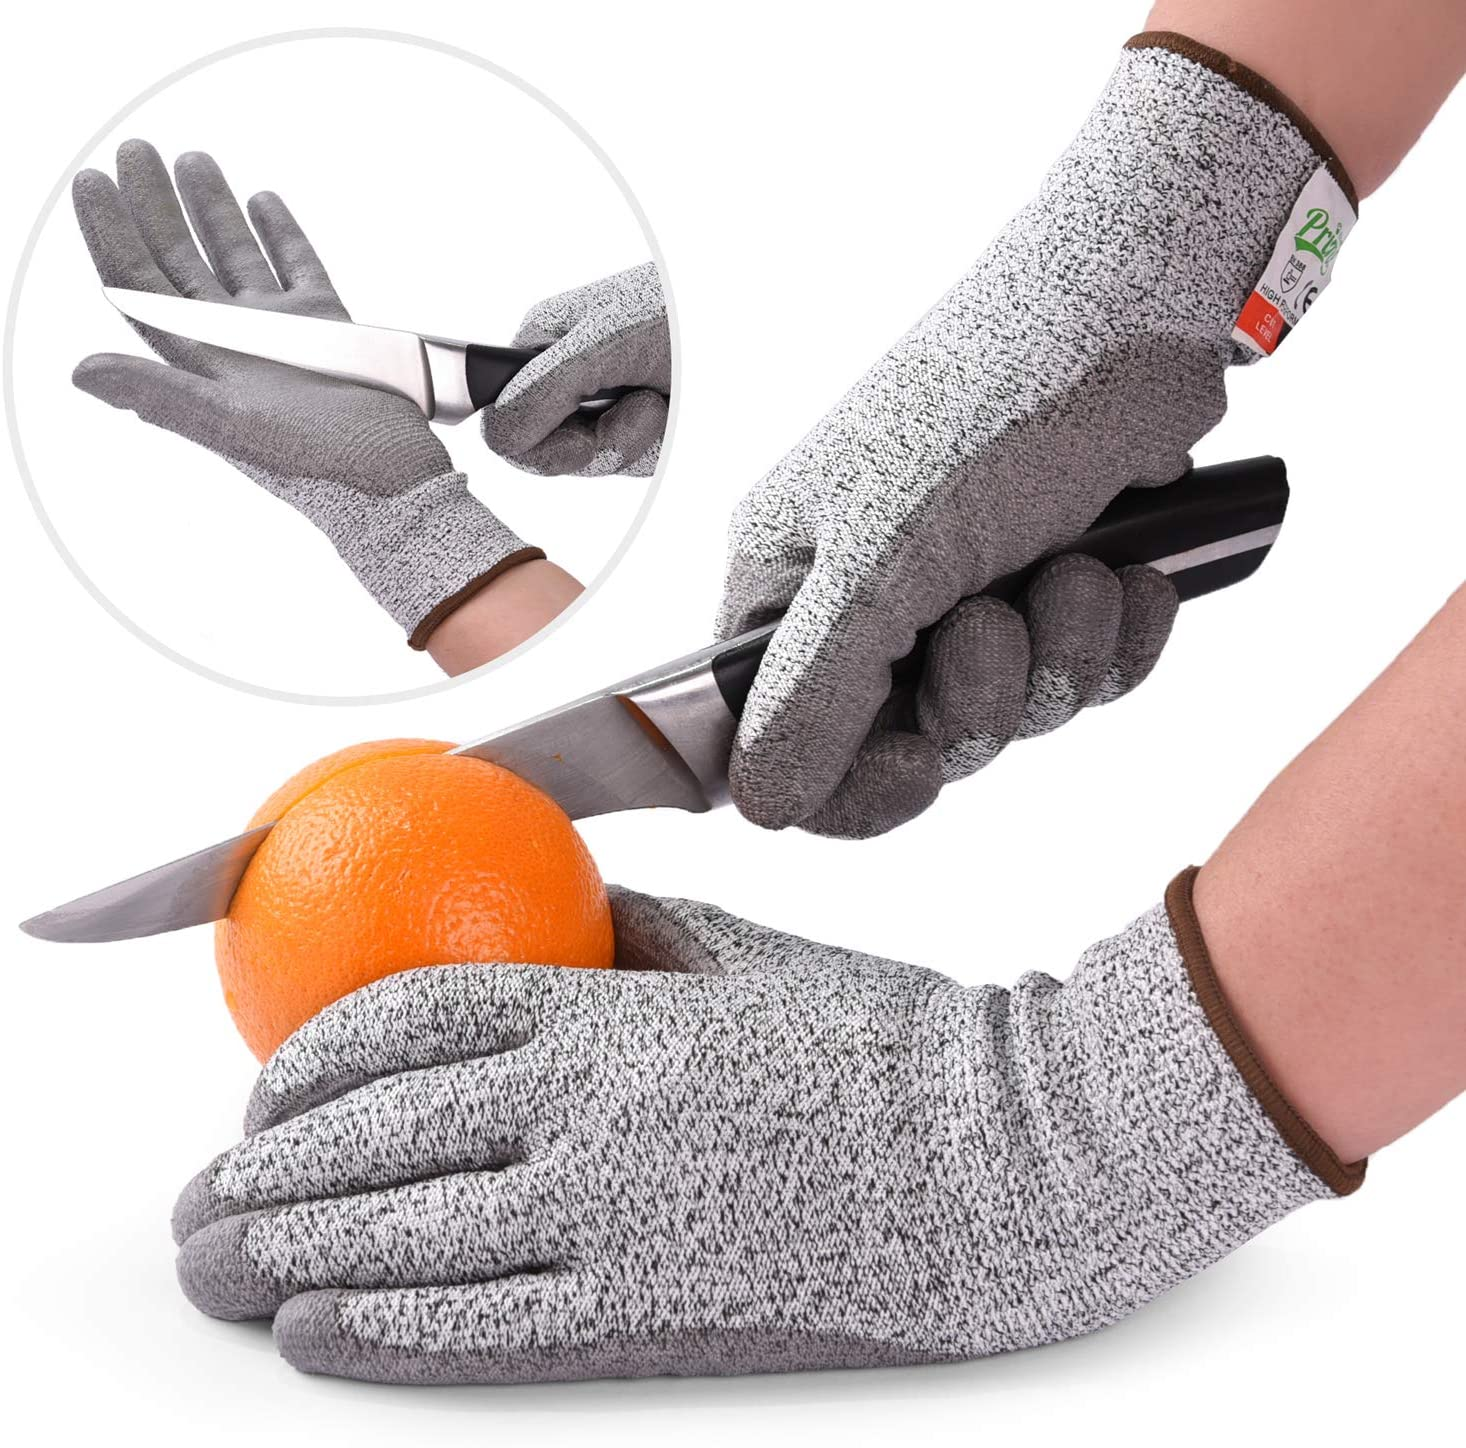 Cut Resistant Gloves PU coated. Food Grade Level 5 Safety for Cutting, Slicing.(Small)